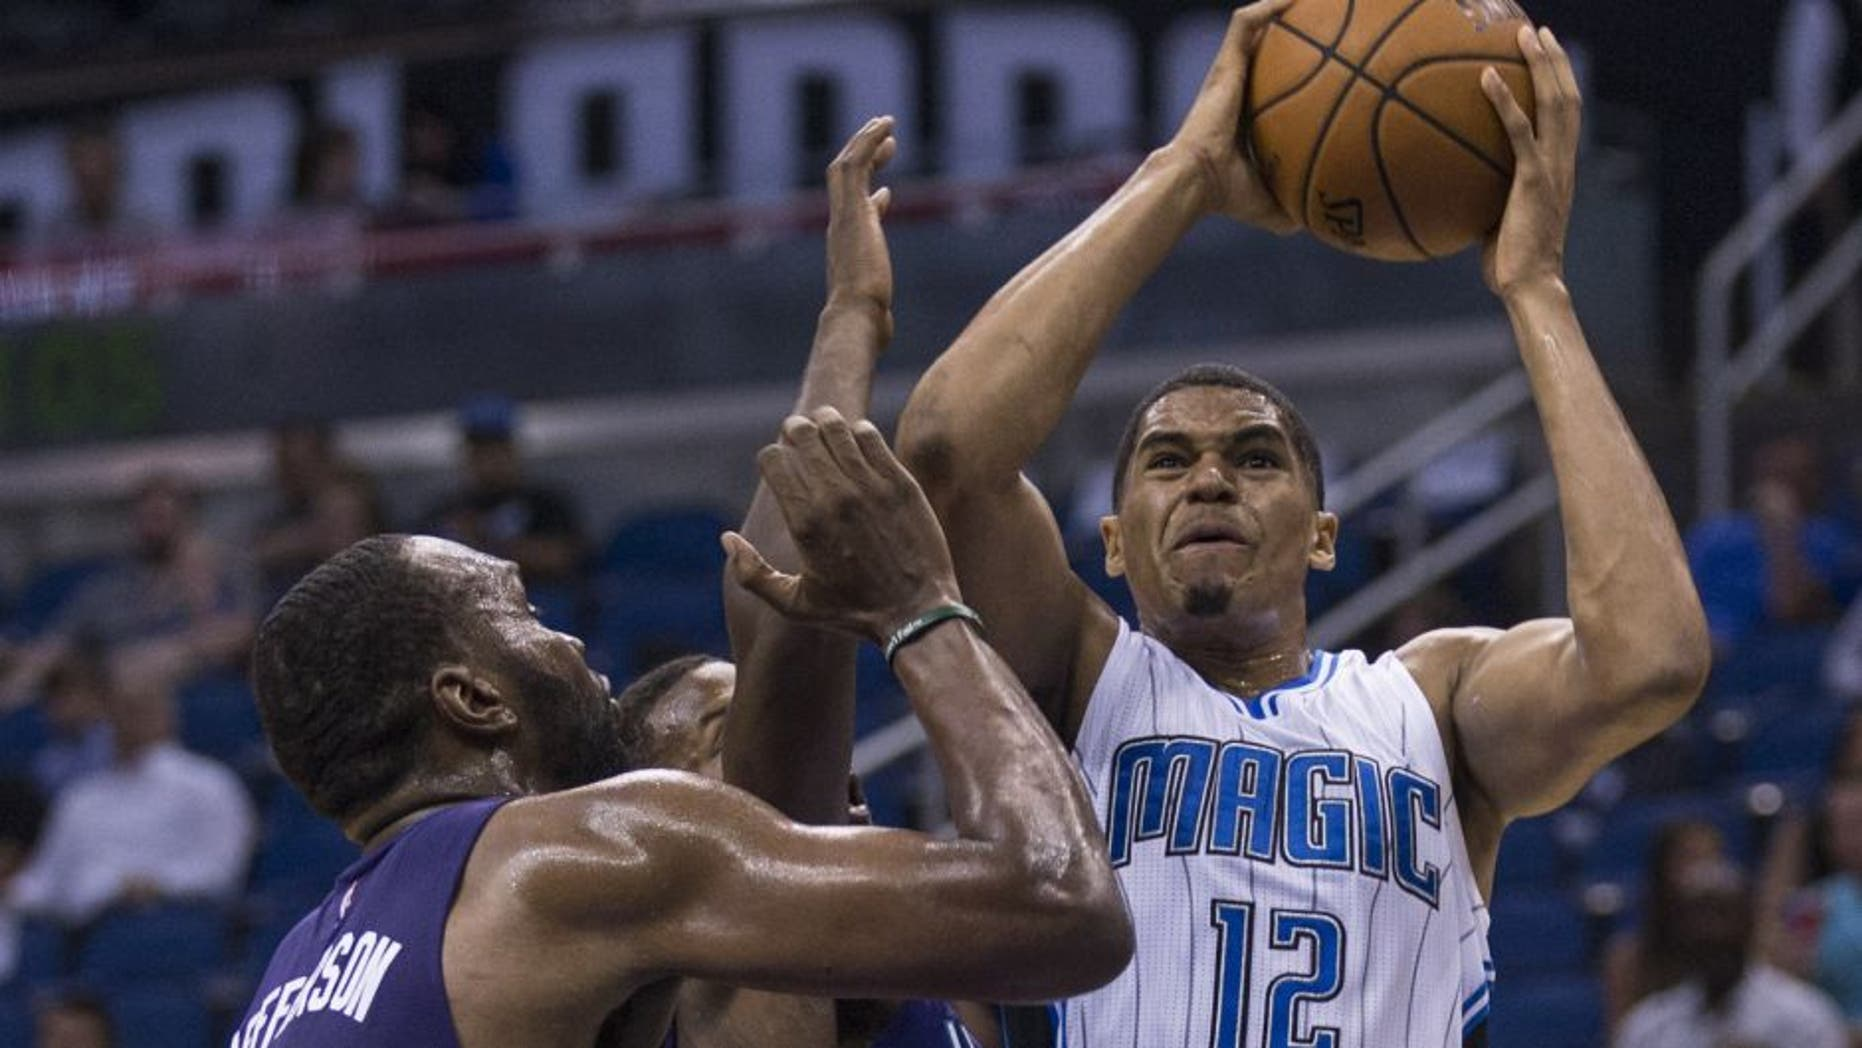 Orlando Magic forward Tobias Harris (12) shoots the ball and scores over Charlotte Hornets forward Sam Thompson (12) center and Charlotte Hornets center Al Jefferson (25) right, during the first half of an NBA basketball game in Orlando, Fla., Saturday, Oct. 3, 2015. (AP Photo/Willie J. Allen Jr.)